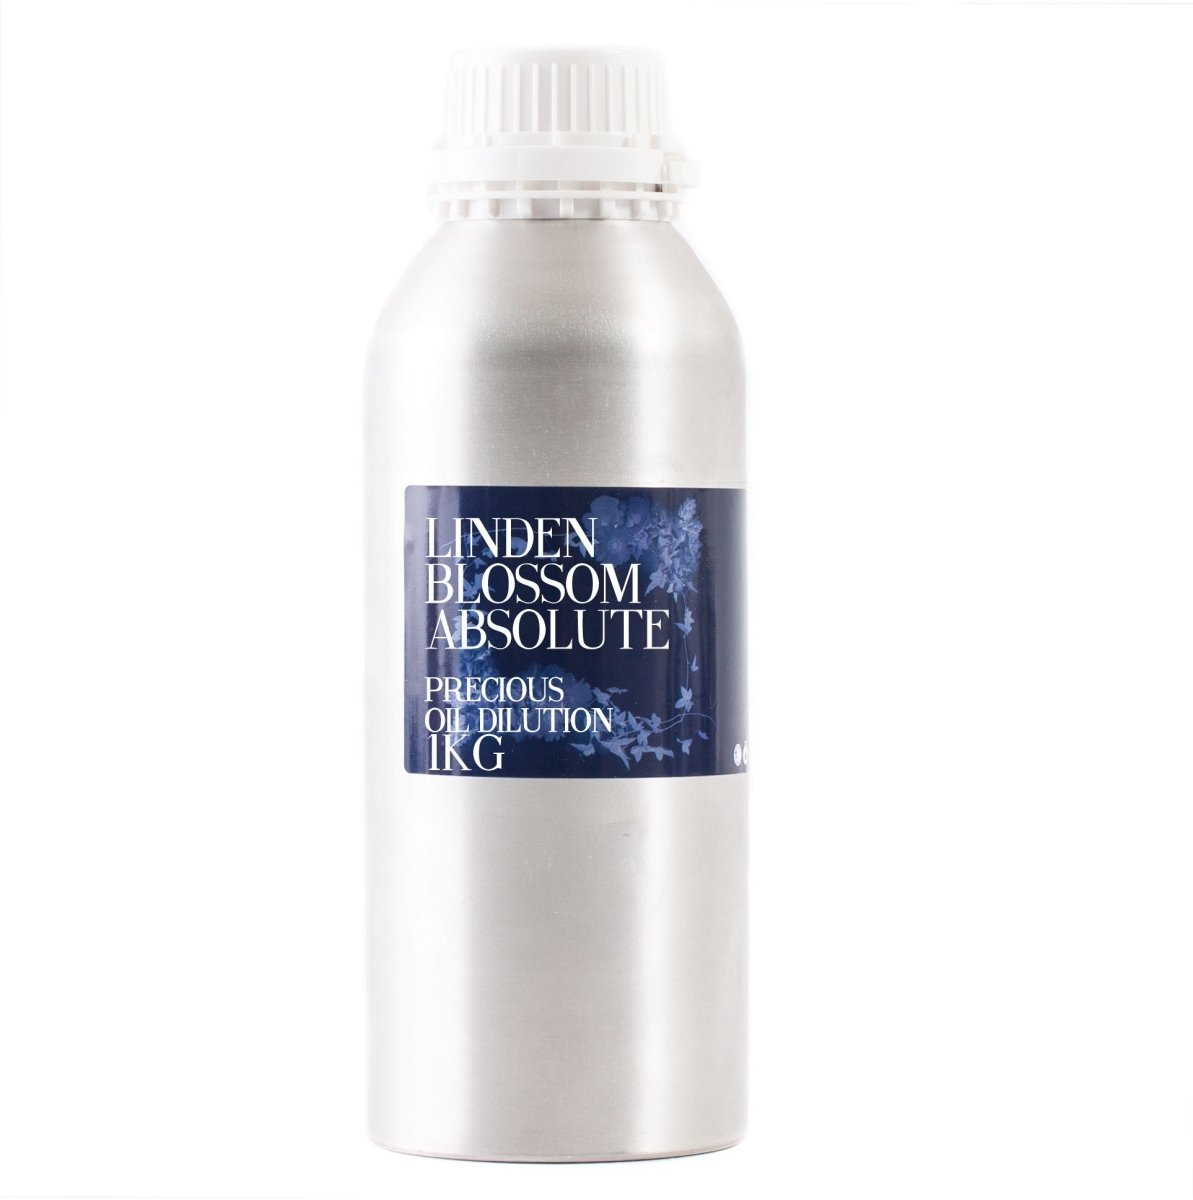 Linden Blossom Absolute Oil Dilution - Mystic Moments UK